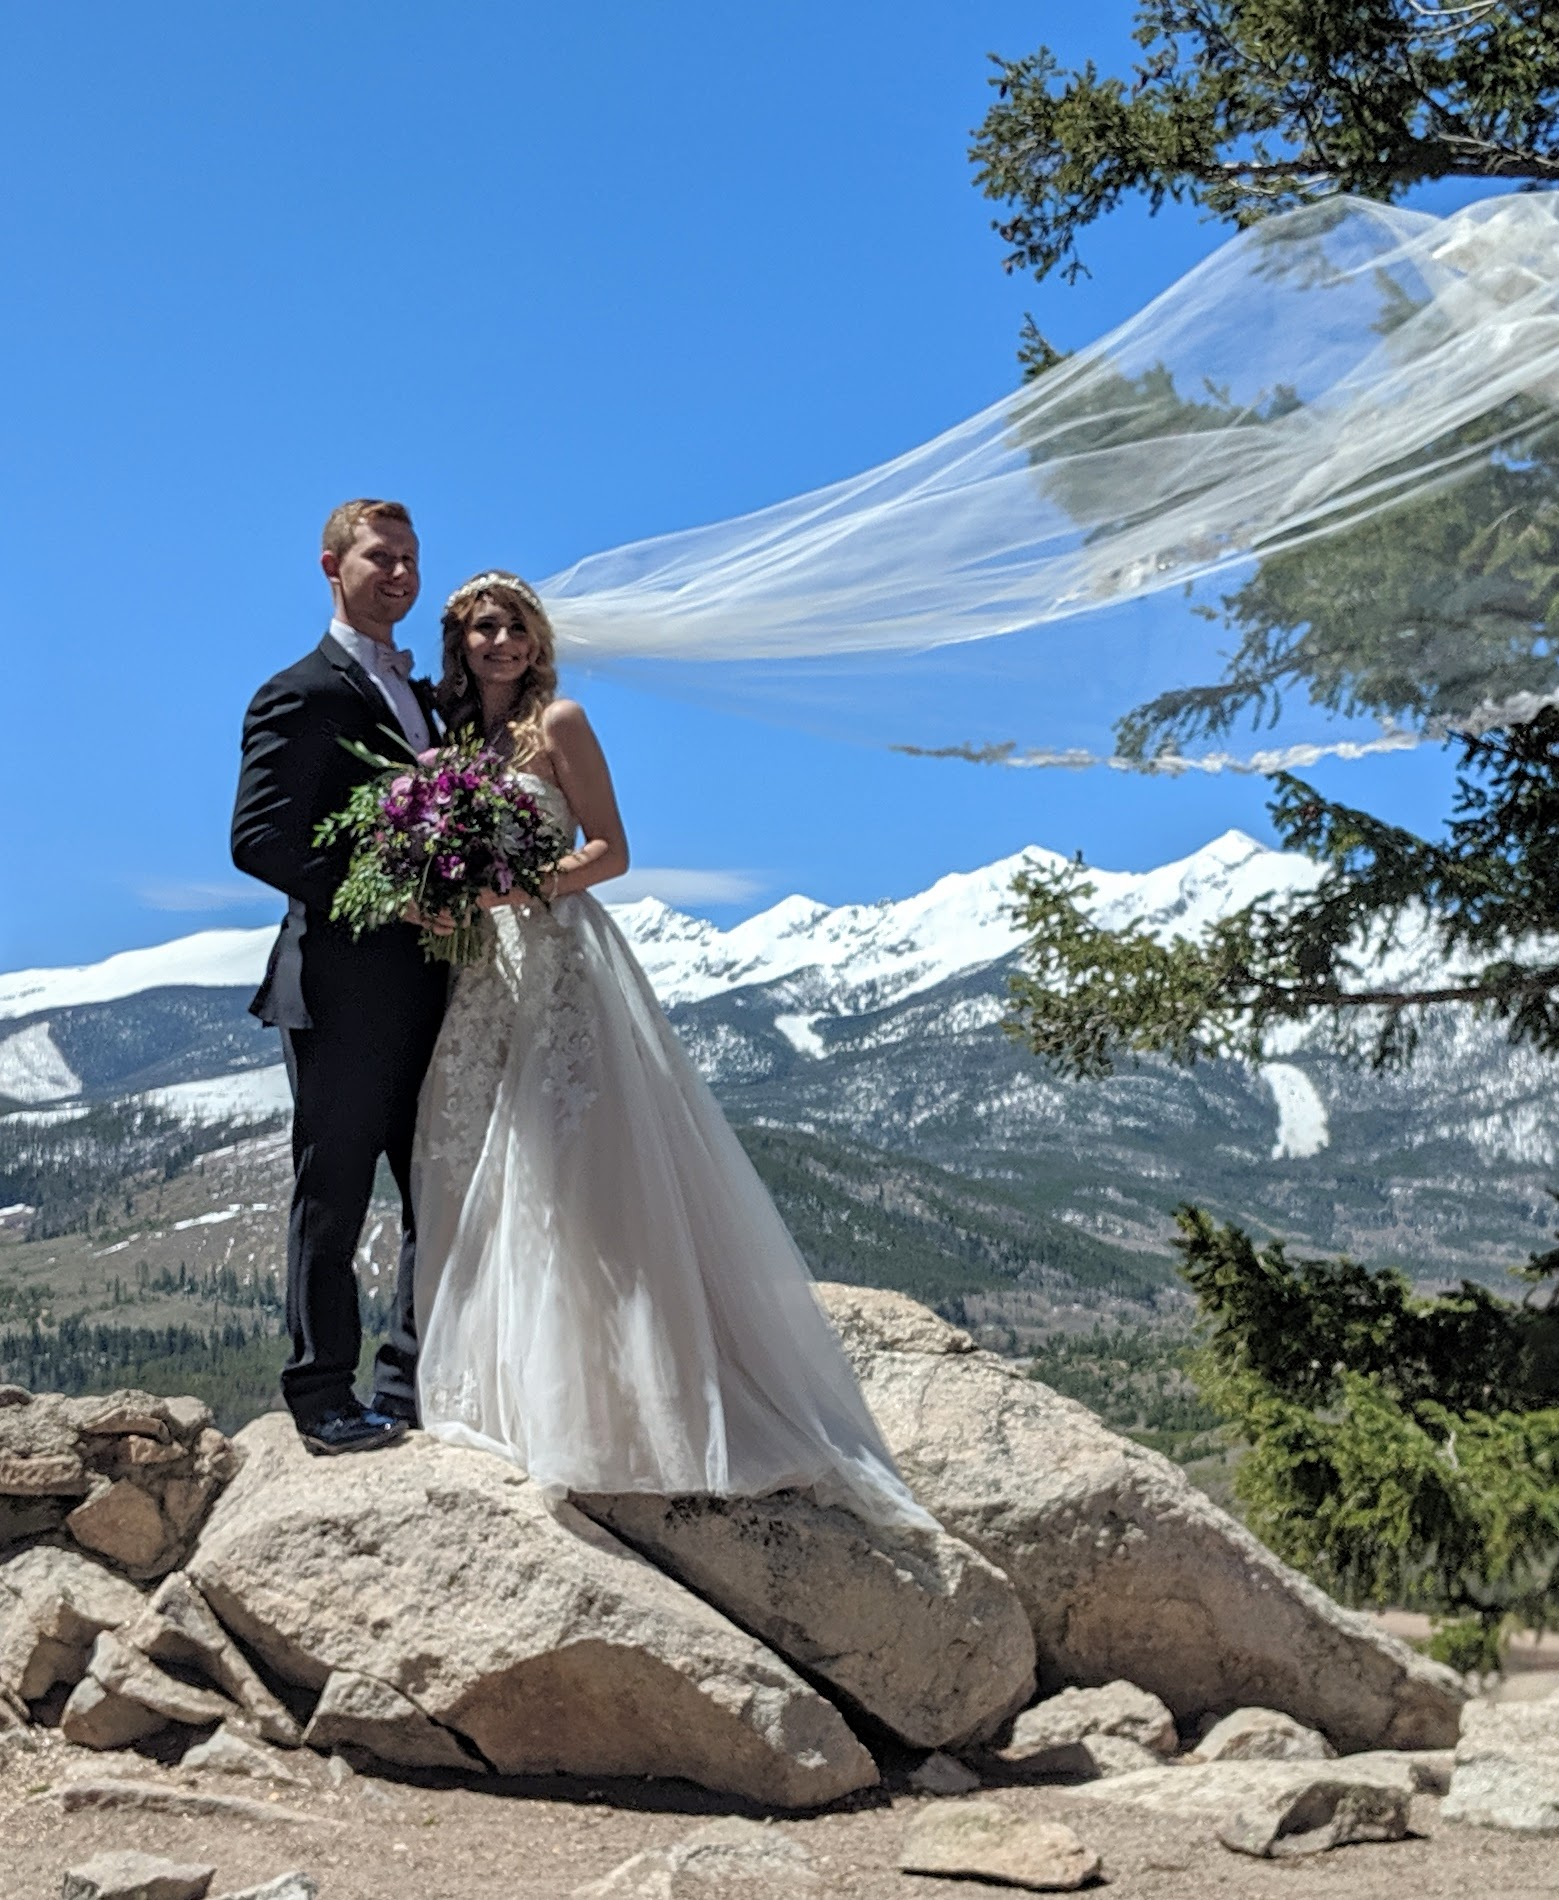 Flute and Strings by Christen Stephens, solo flute wedding ceremony music at Sapphire Point in Dillon, Colorado